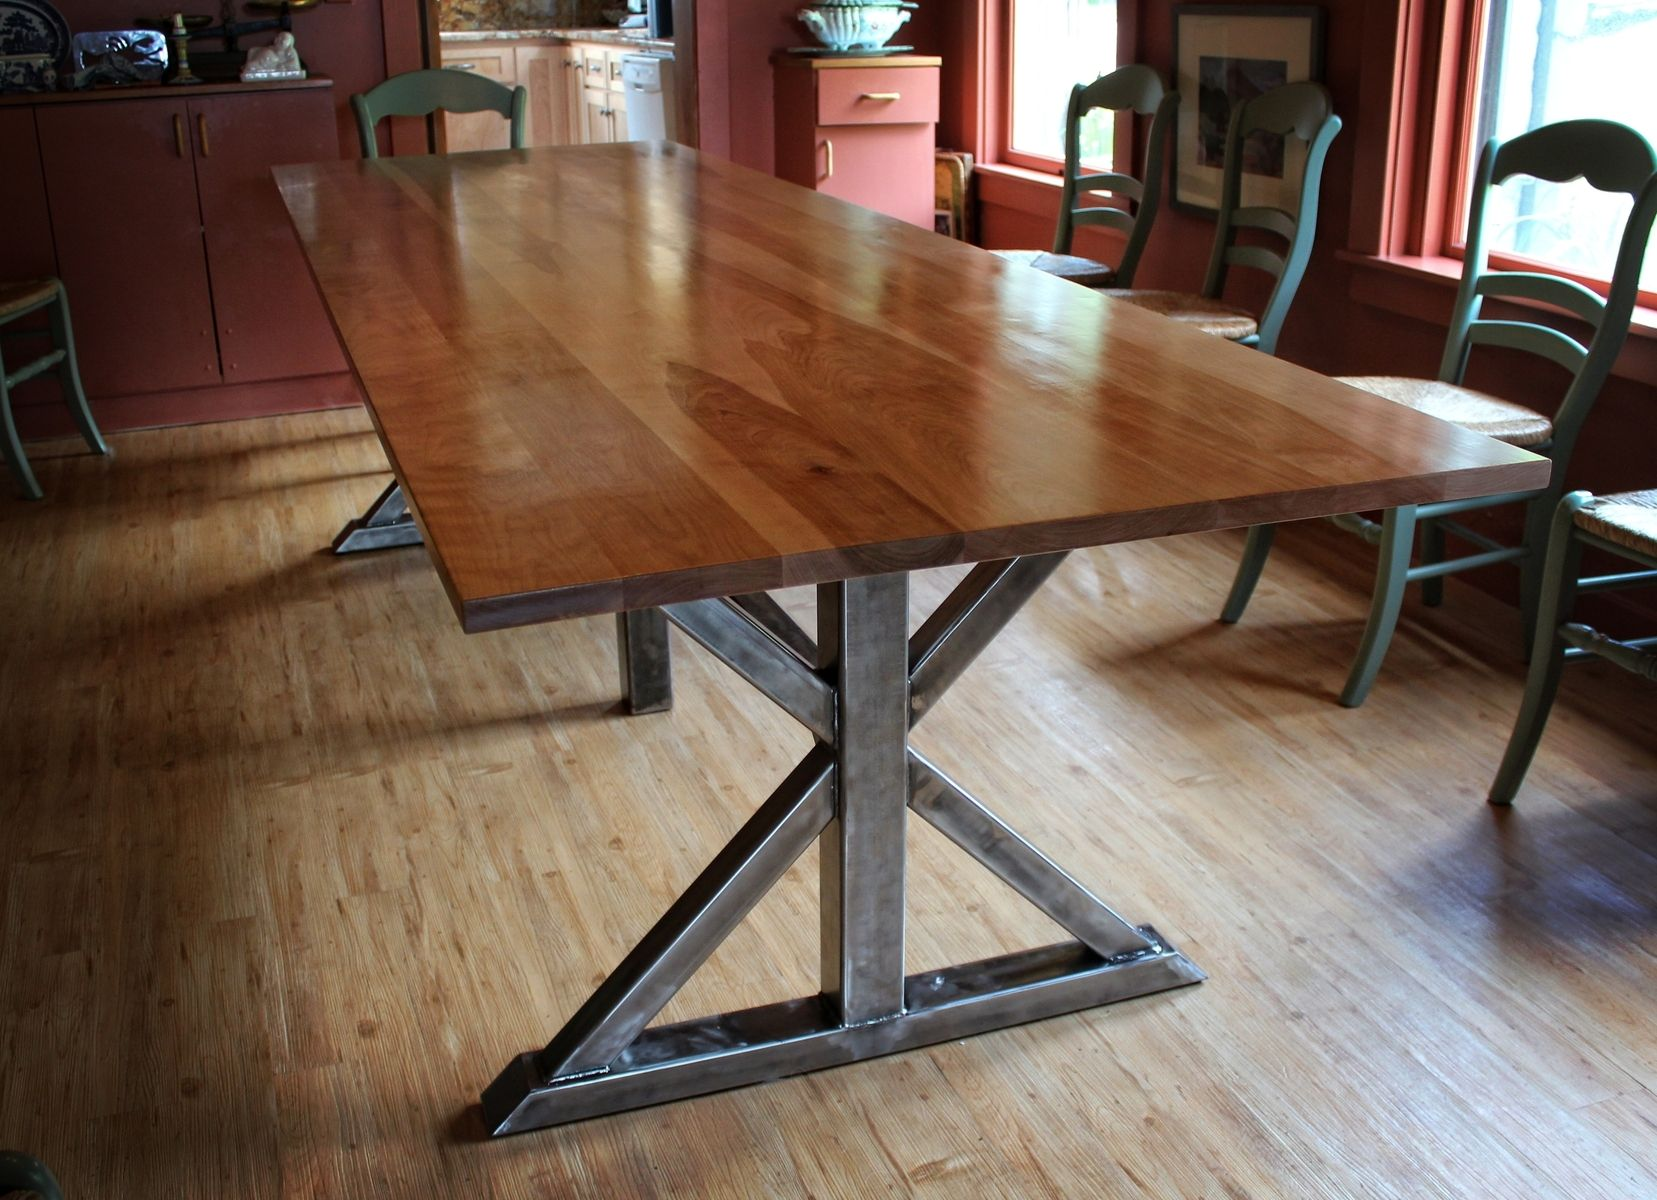 Handmade birch and steel trestle dining table by higgins fabrication - Birch kitchen table ...